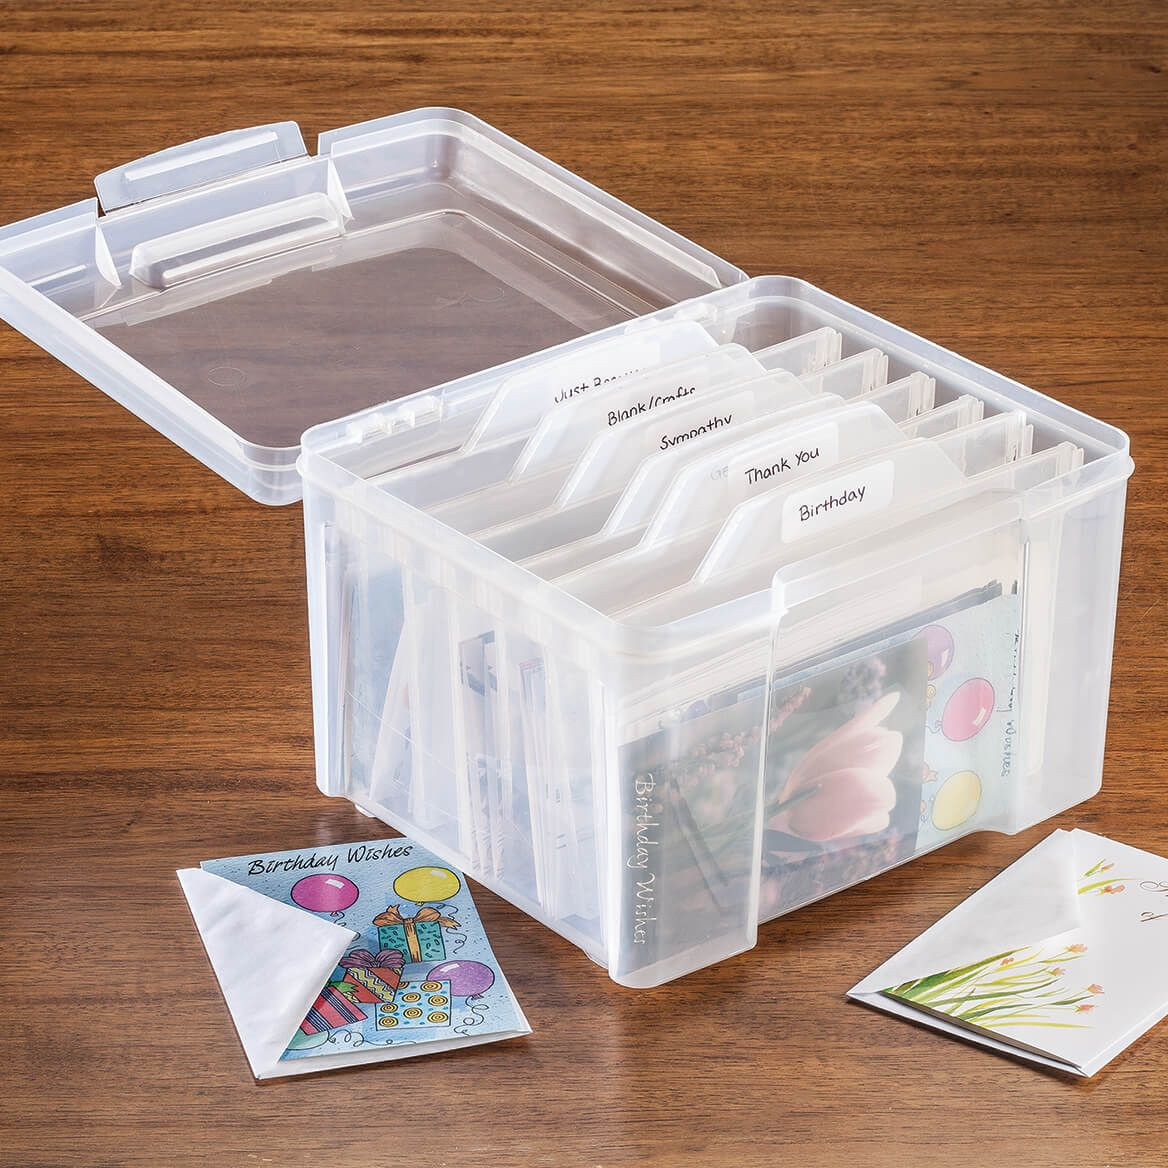 Greeting Card Organizer with Dividers-367052